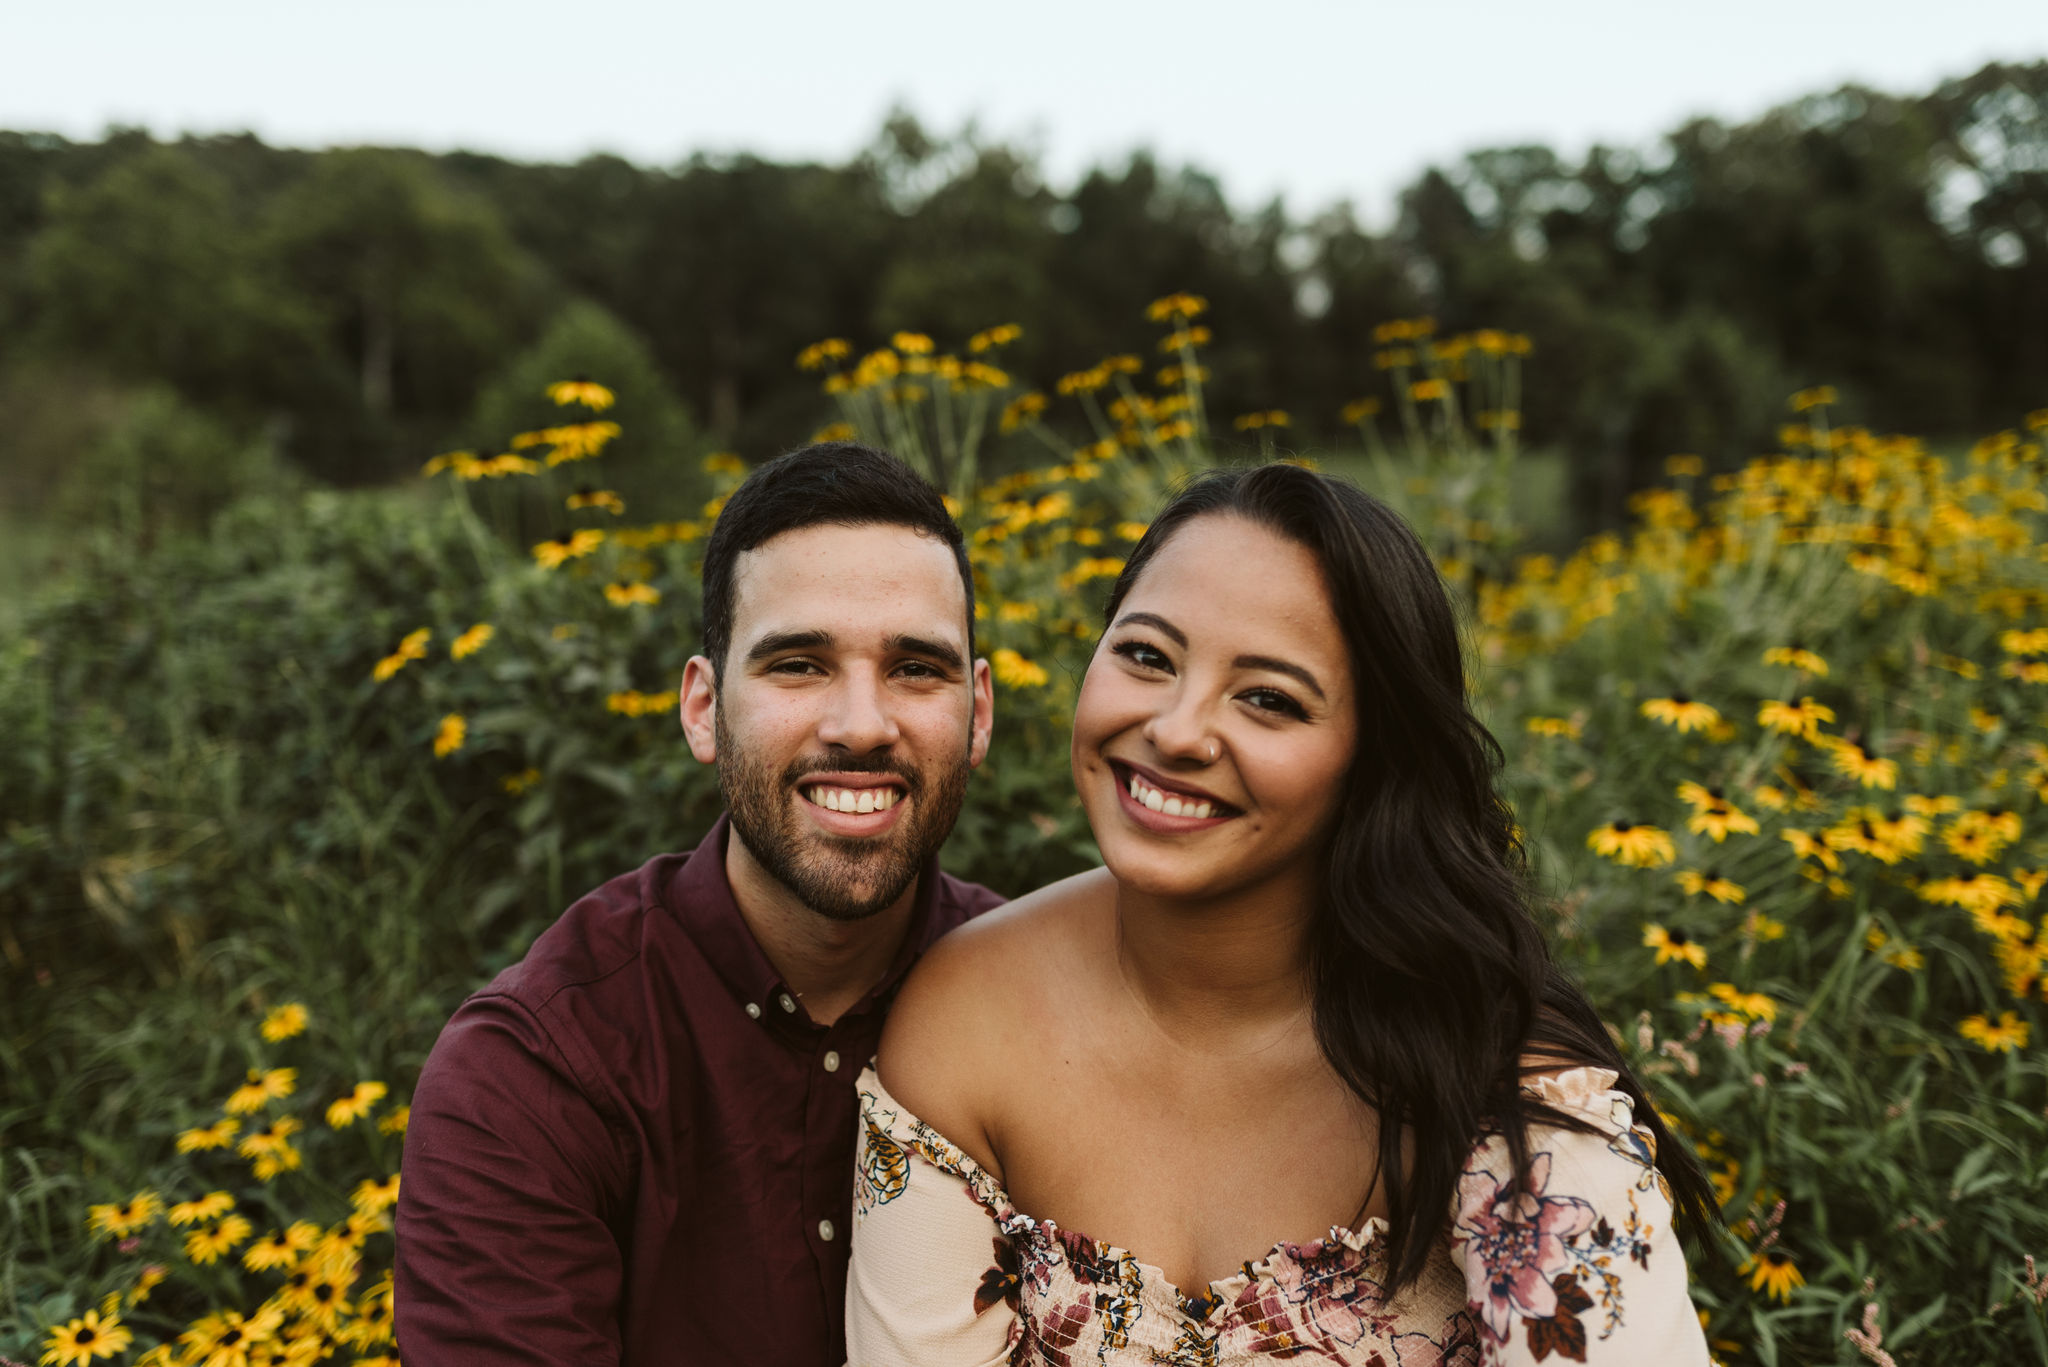 Frederick Maryland, Baltimore Wedding Photographer, Engagement, Bend in the River Farm, Outdoor, Rustic, Nature, Portrait of Bride and Groom at Sunset with Wildflowers